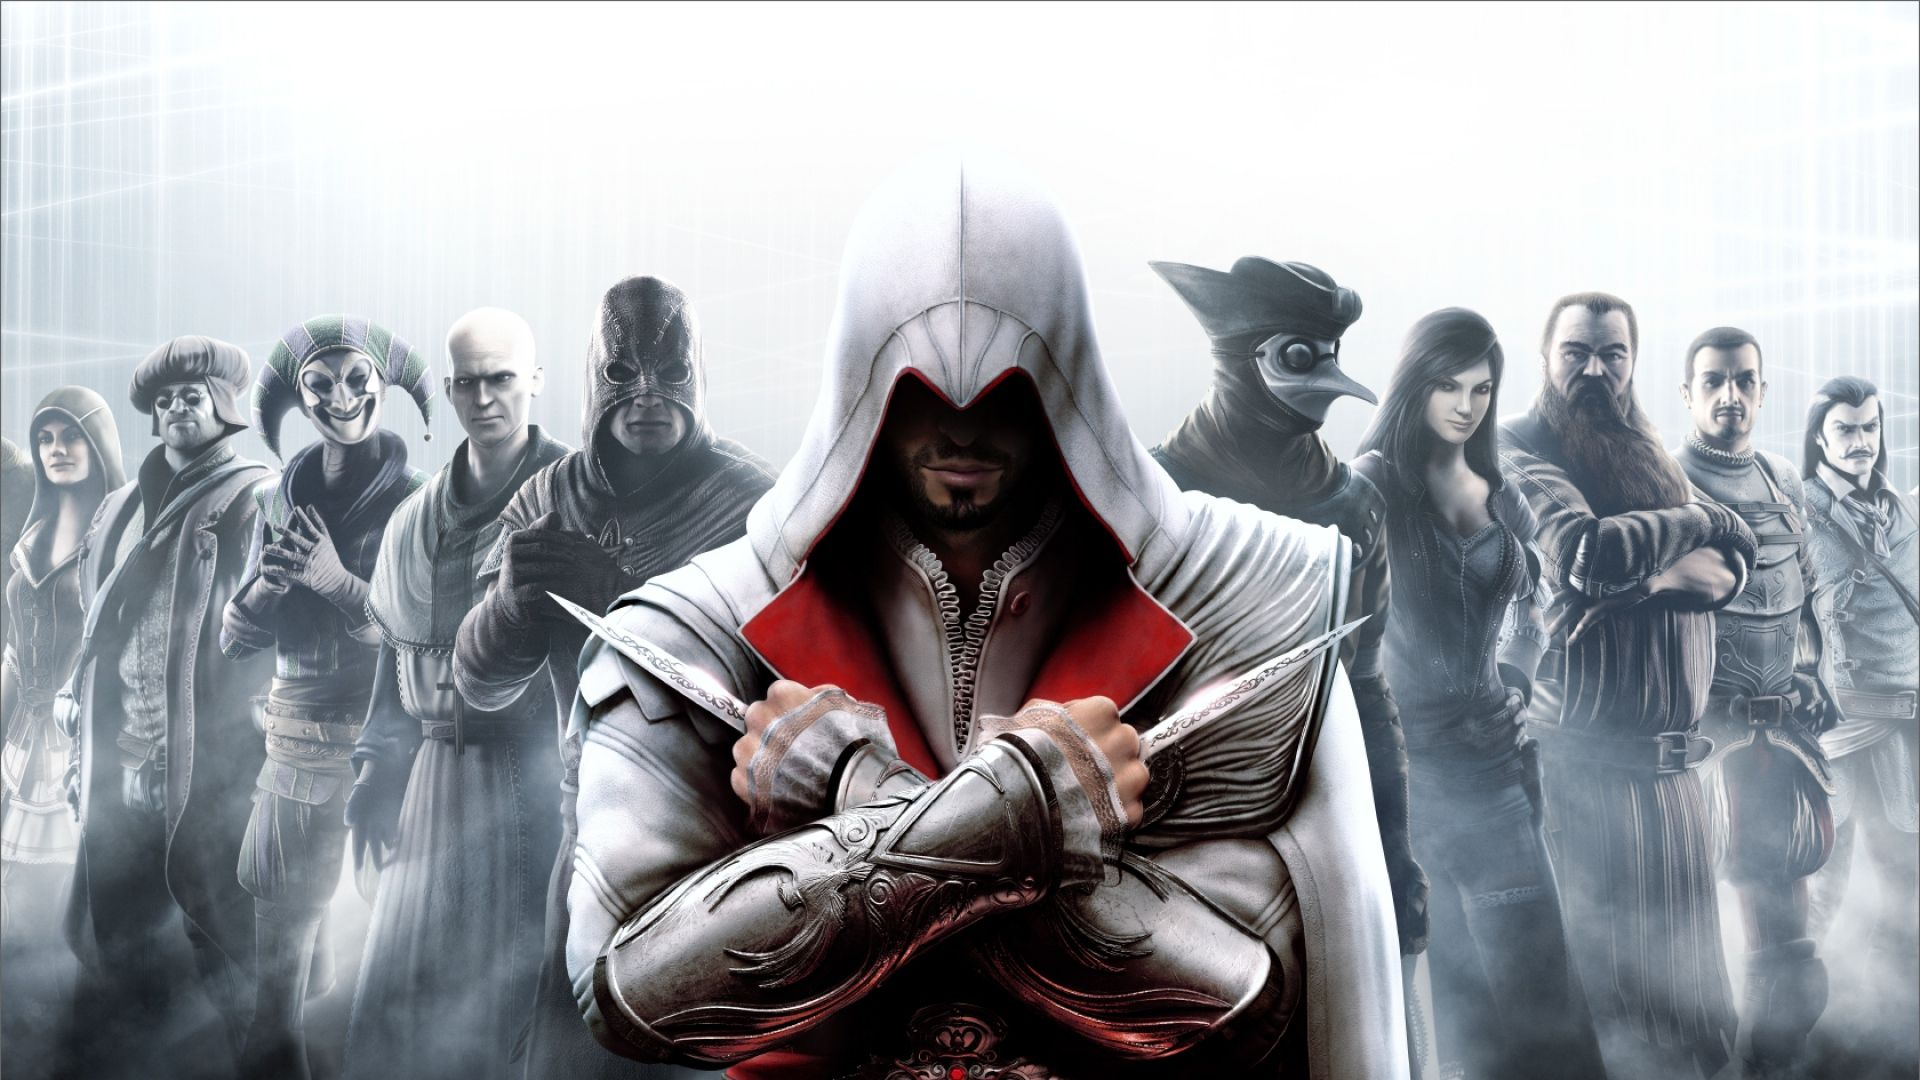 Download Wallpaper 1920x1080 Assassins Creed Warrior Faces Characters Look Full Hd Assassin S Creed Brotherhood Assassins Creed Assassin S Creed Wallpaper